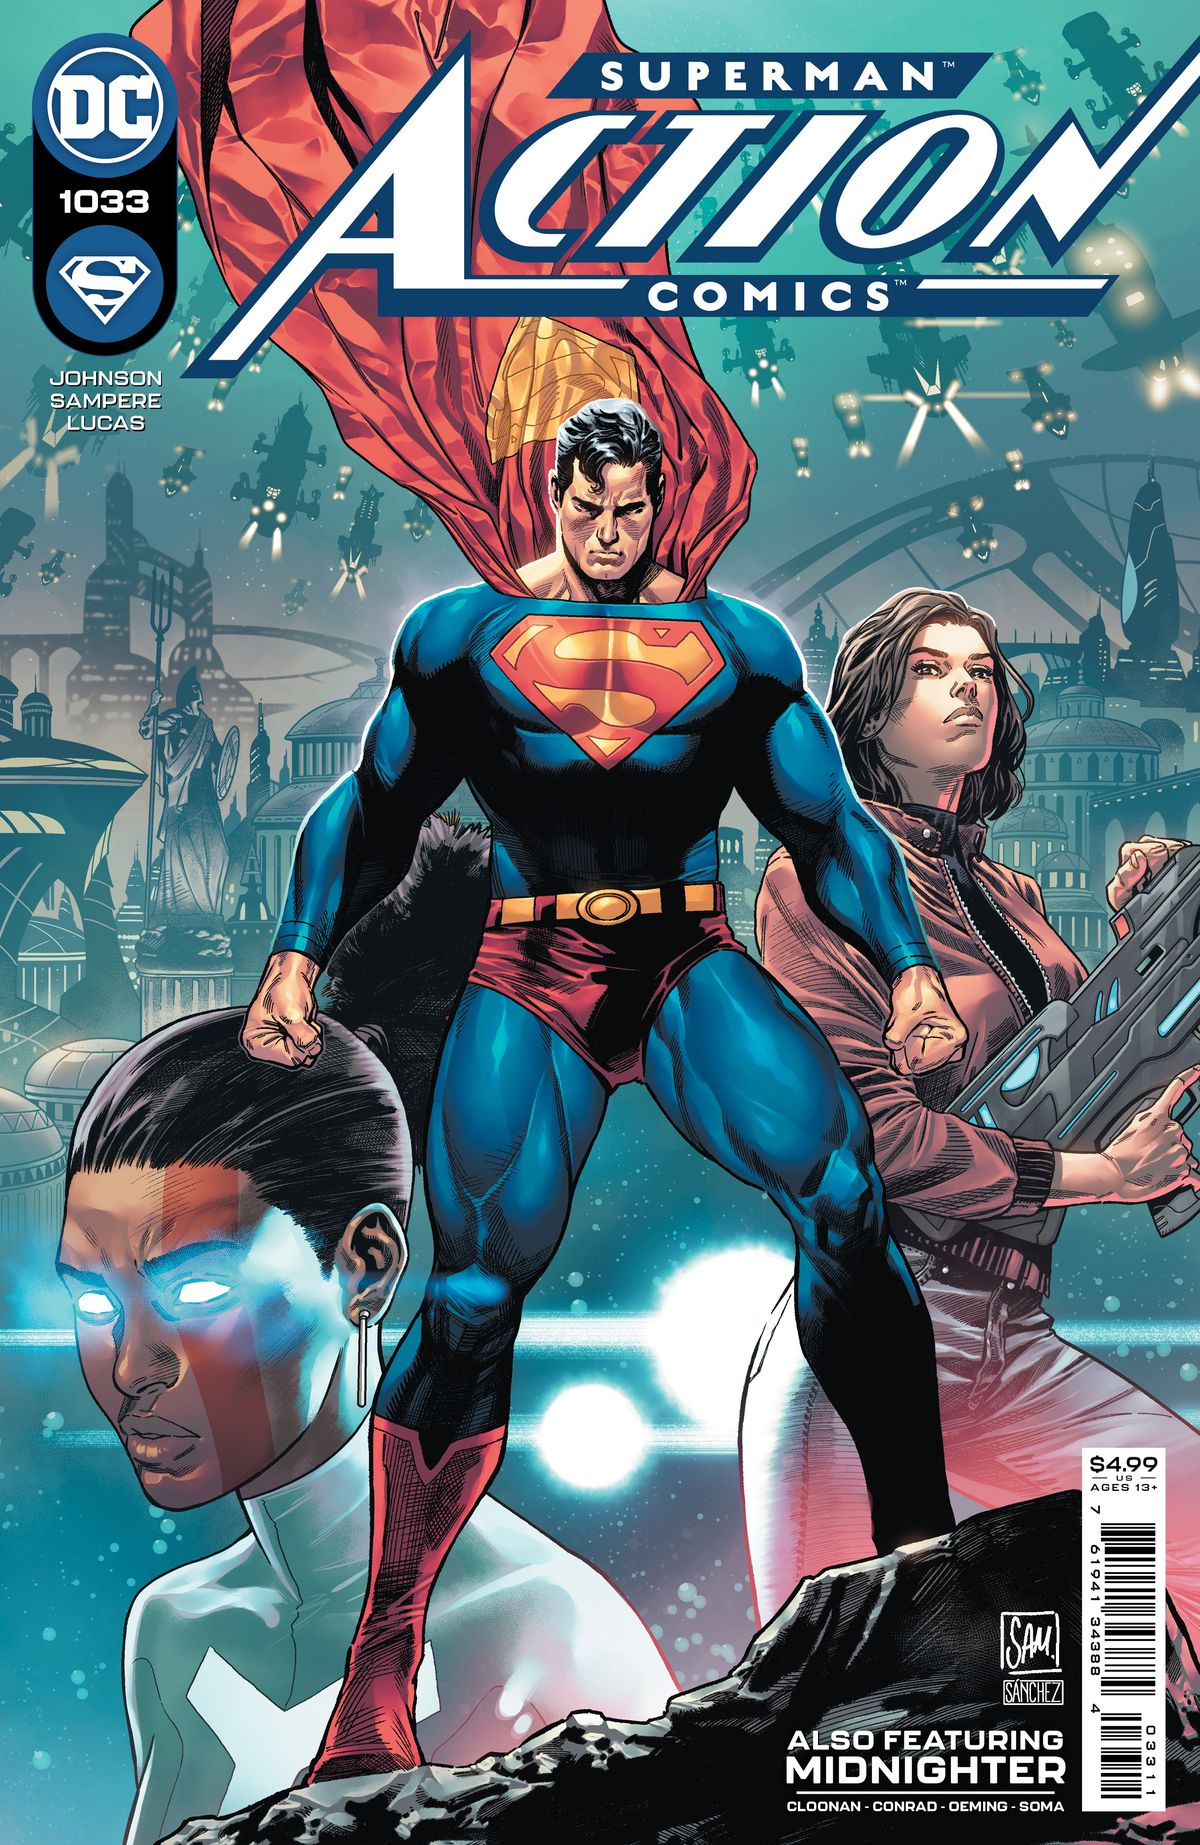 Superman stands ready on the cover of Action Comics #1033, DC Comics (2021).